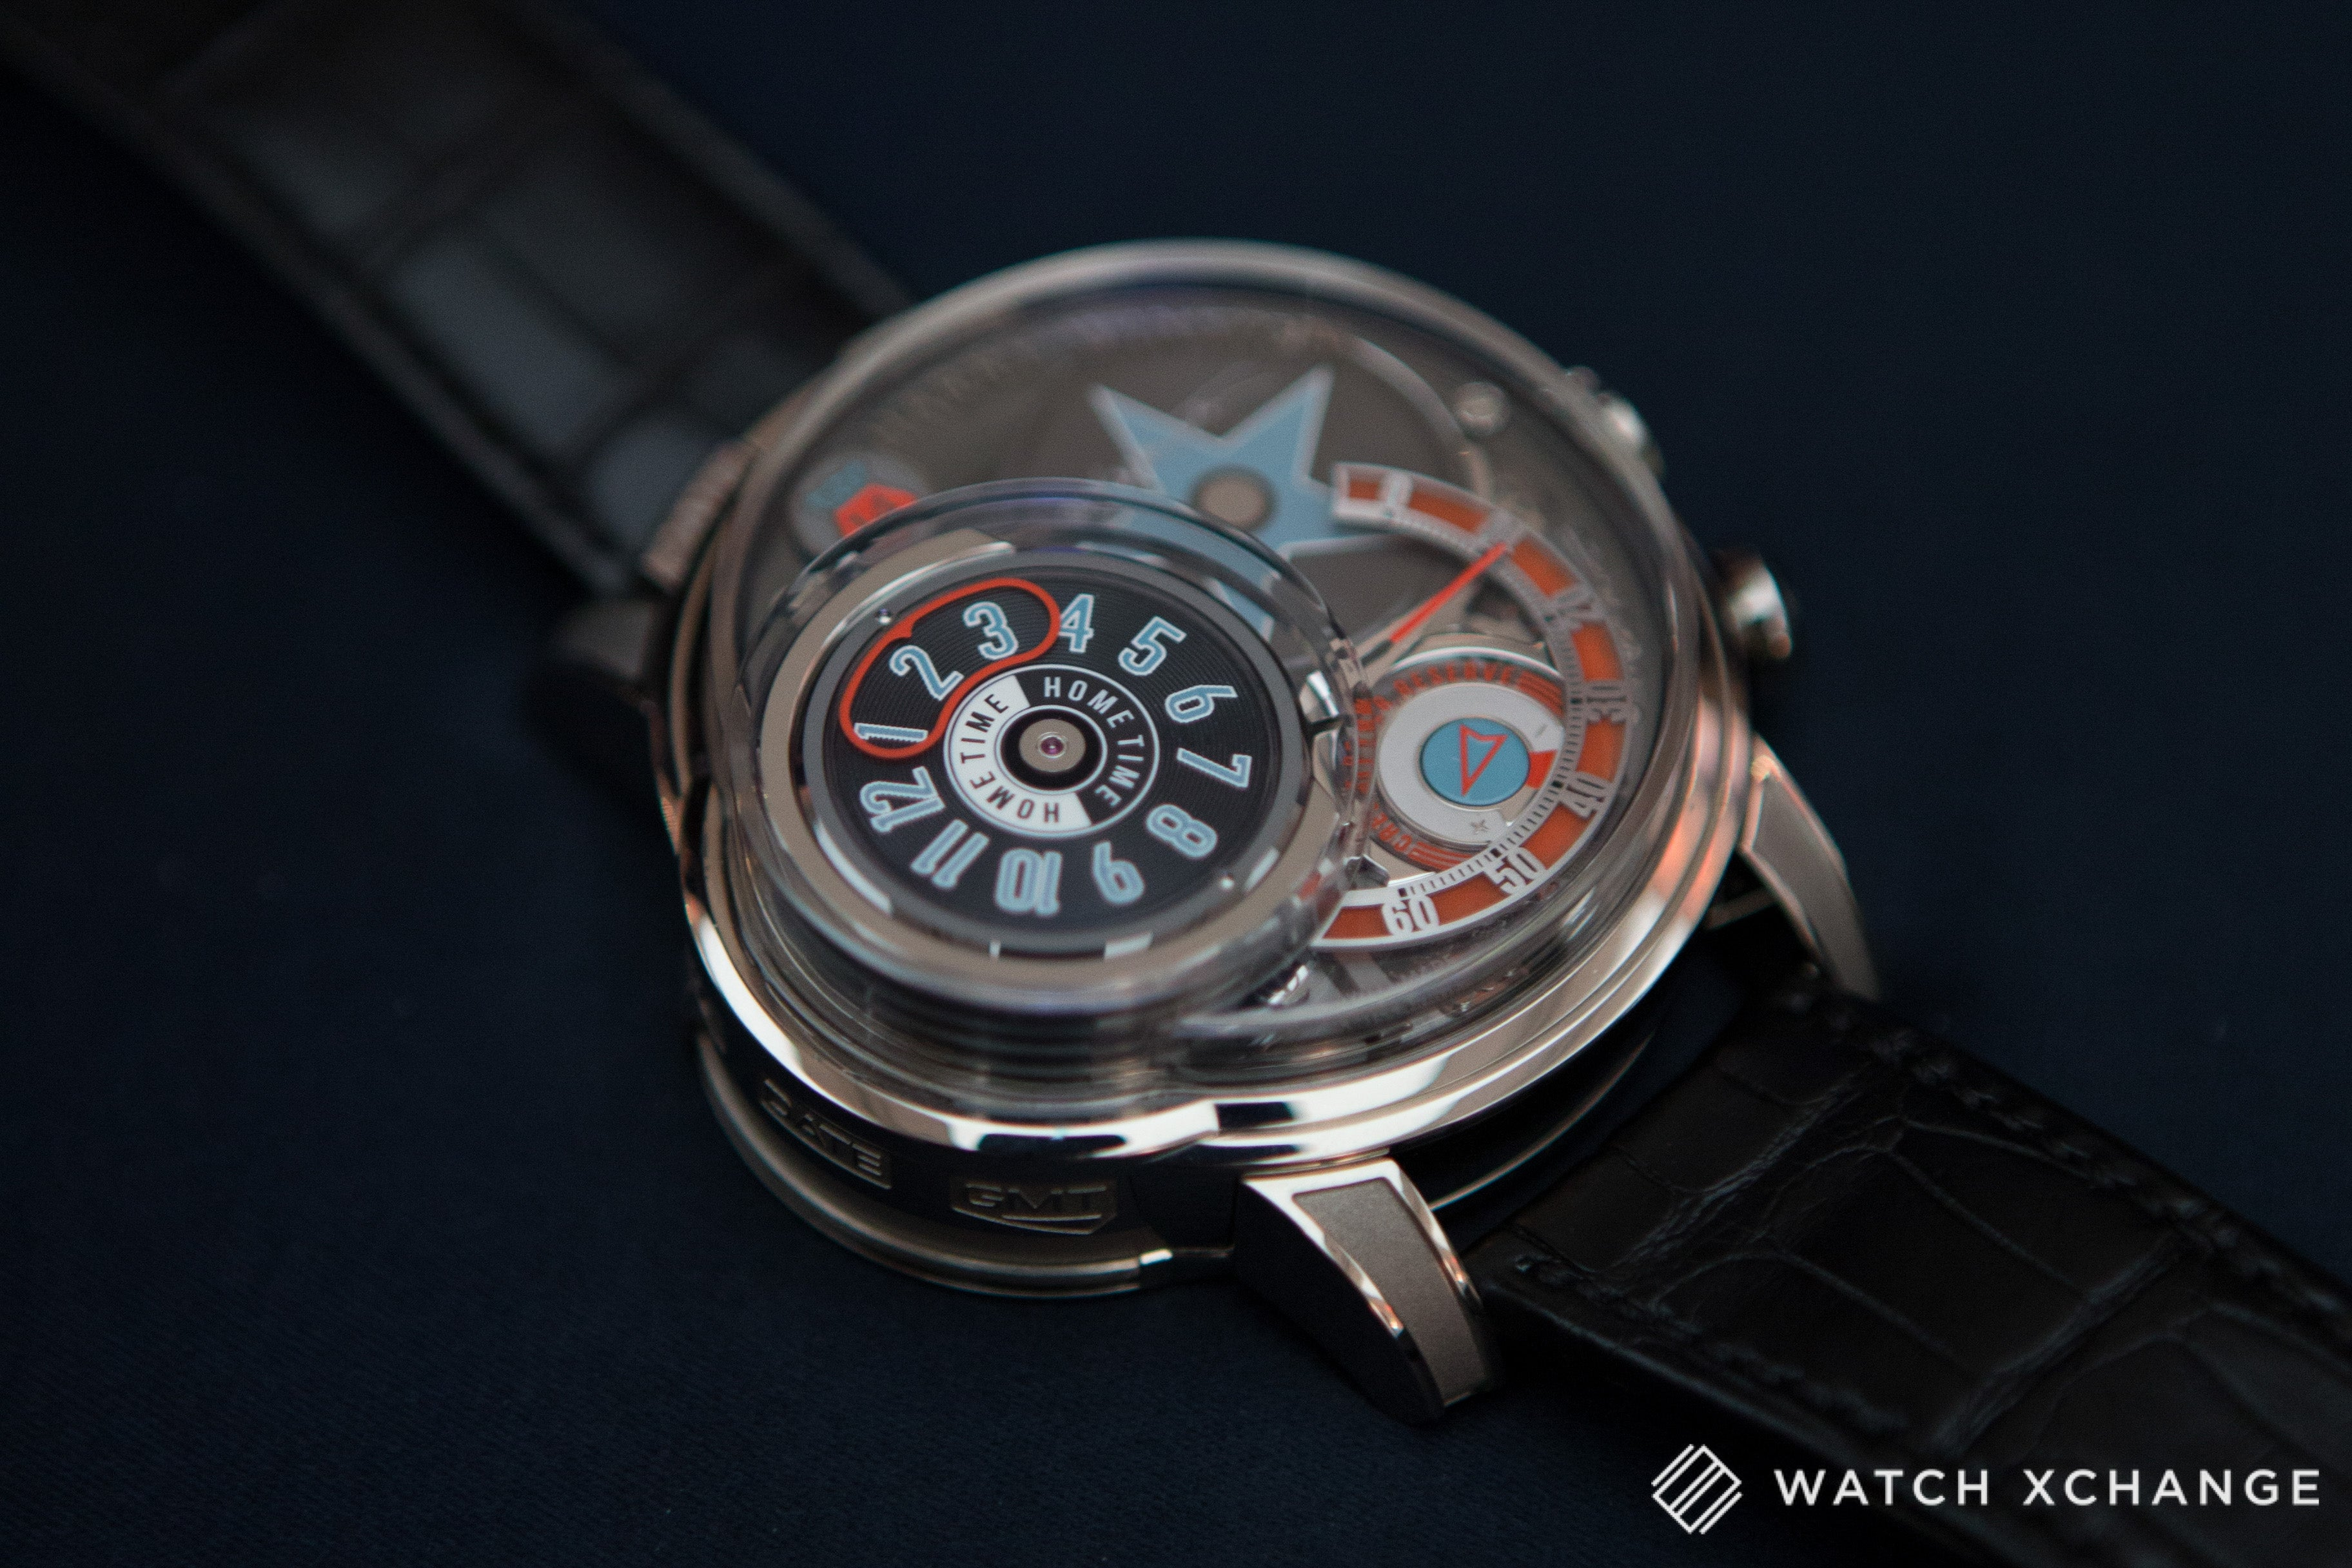 Harry Winston Opus 14 red, blue and black jukebox watch at Salon QP London 2015